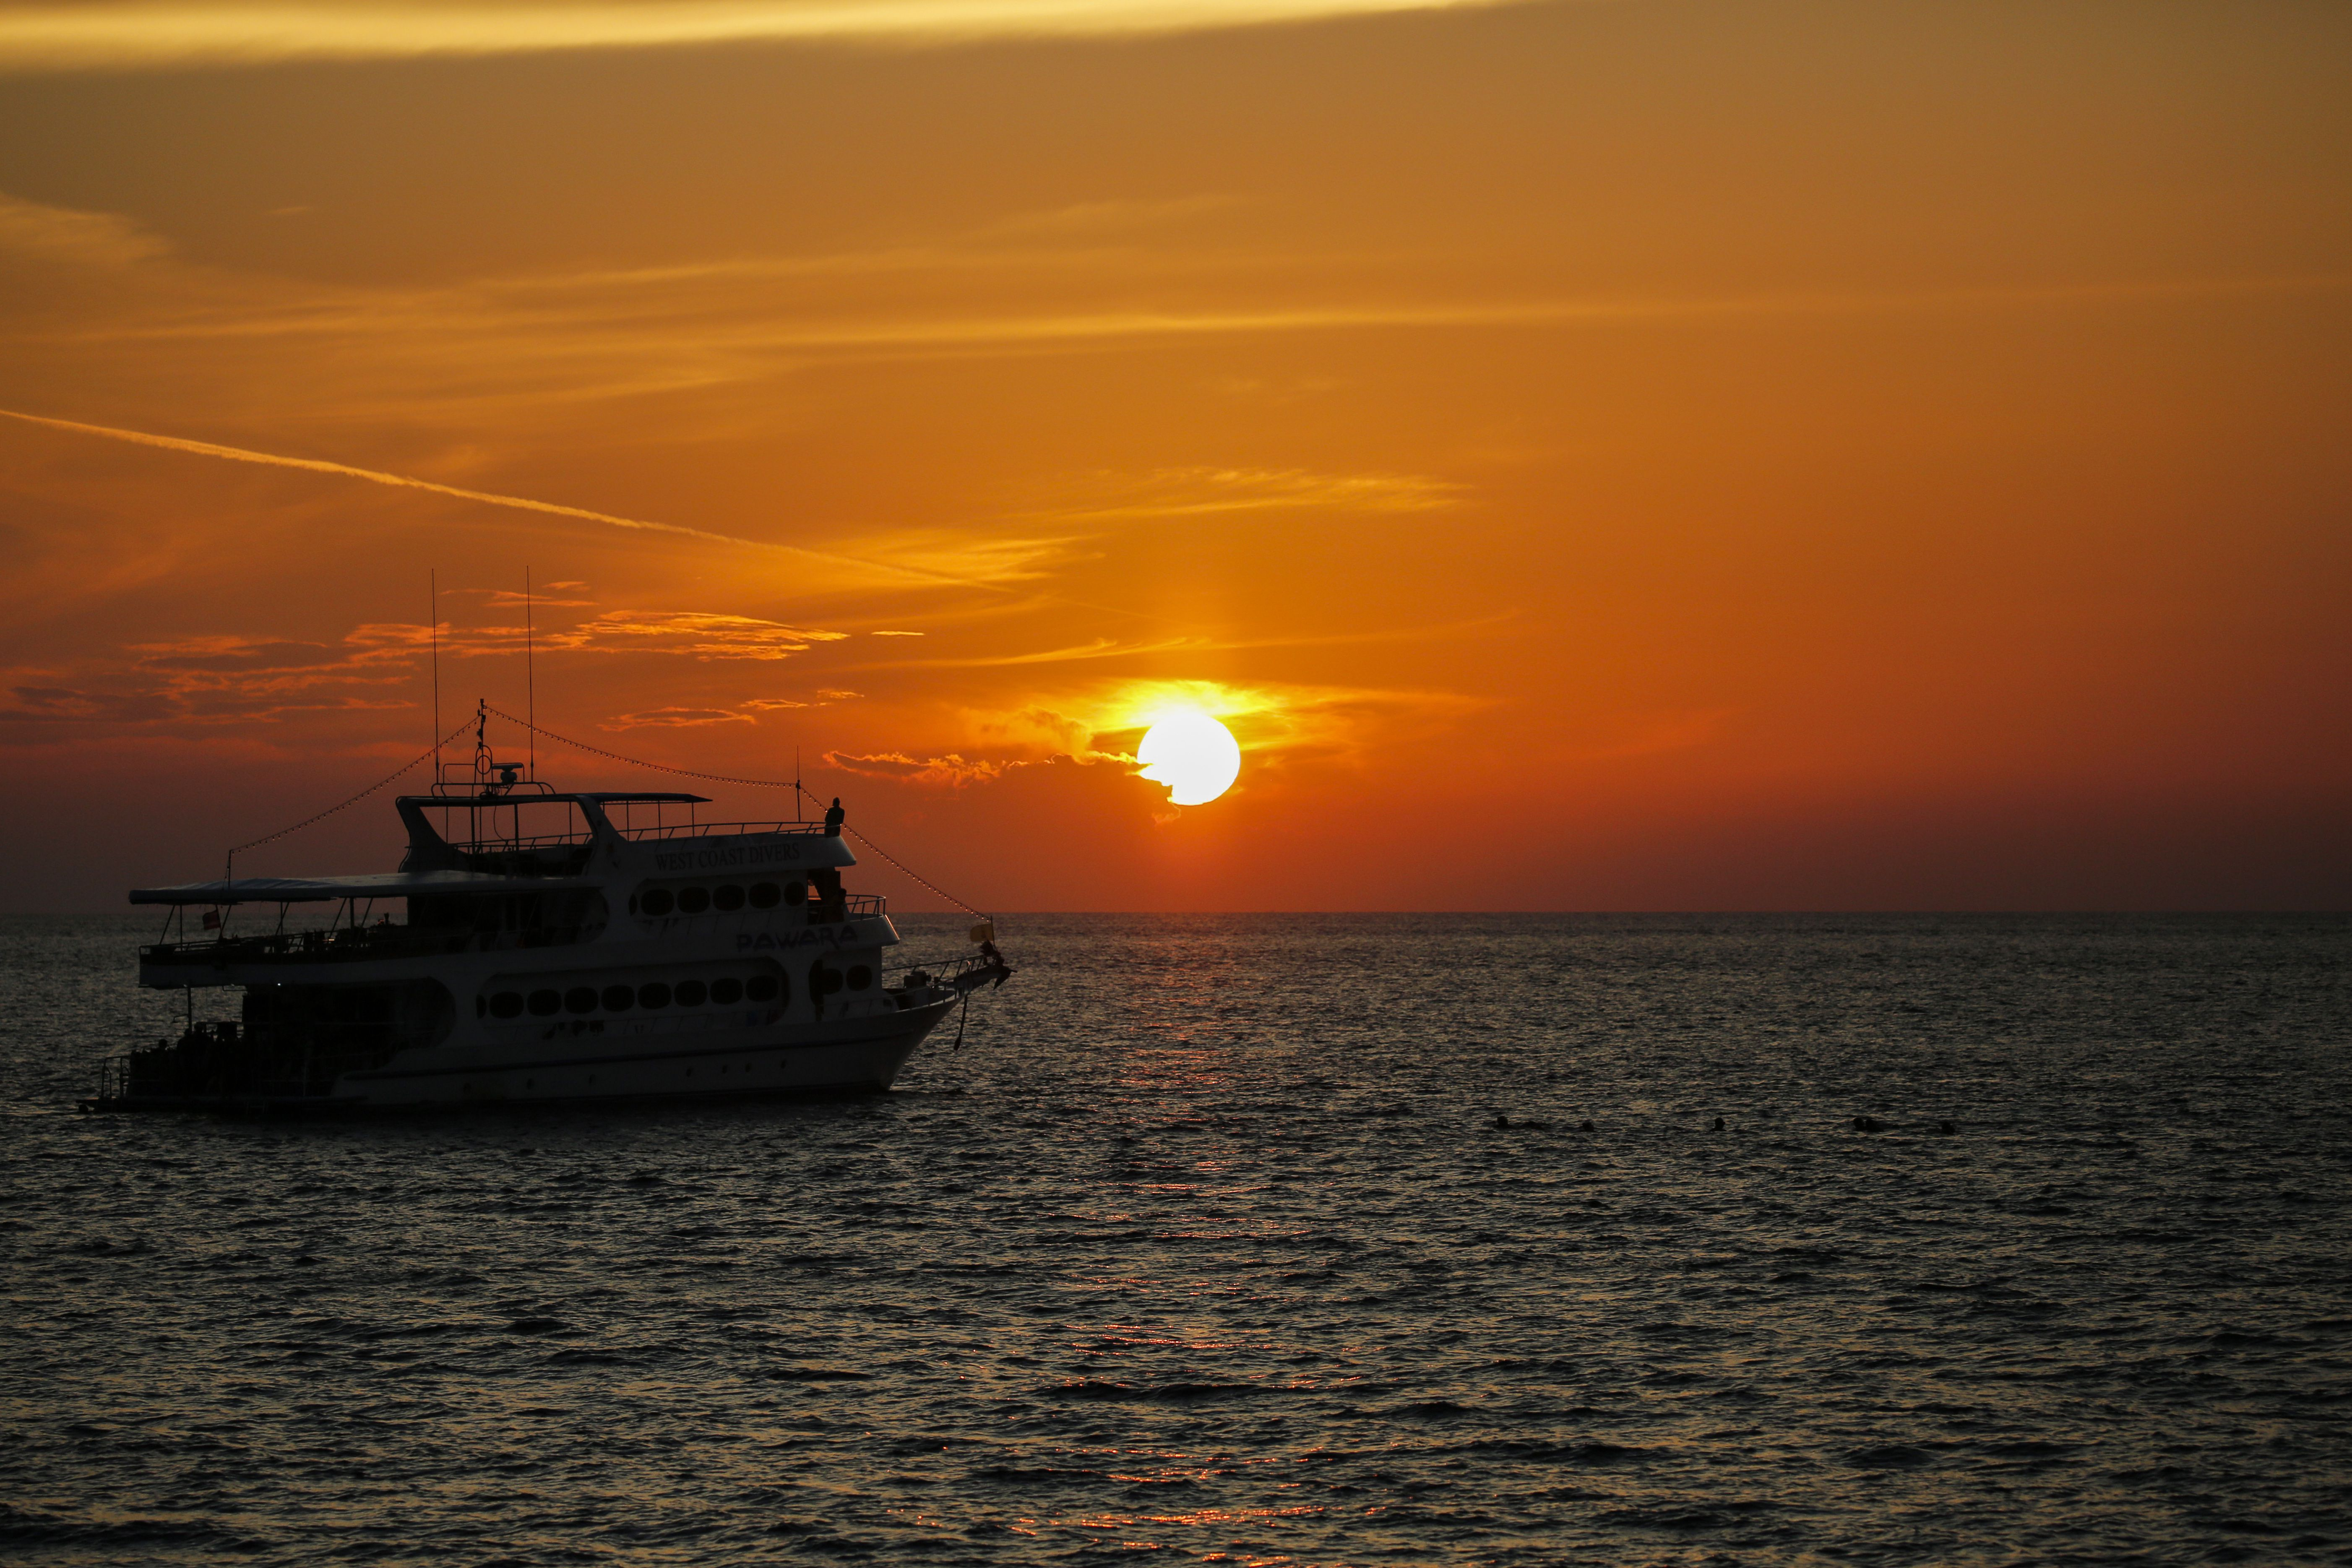 A sunset in Thailand